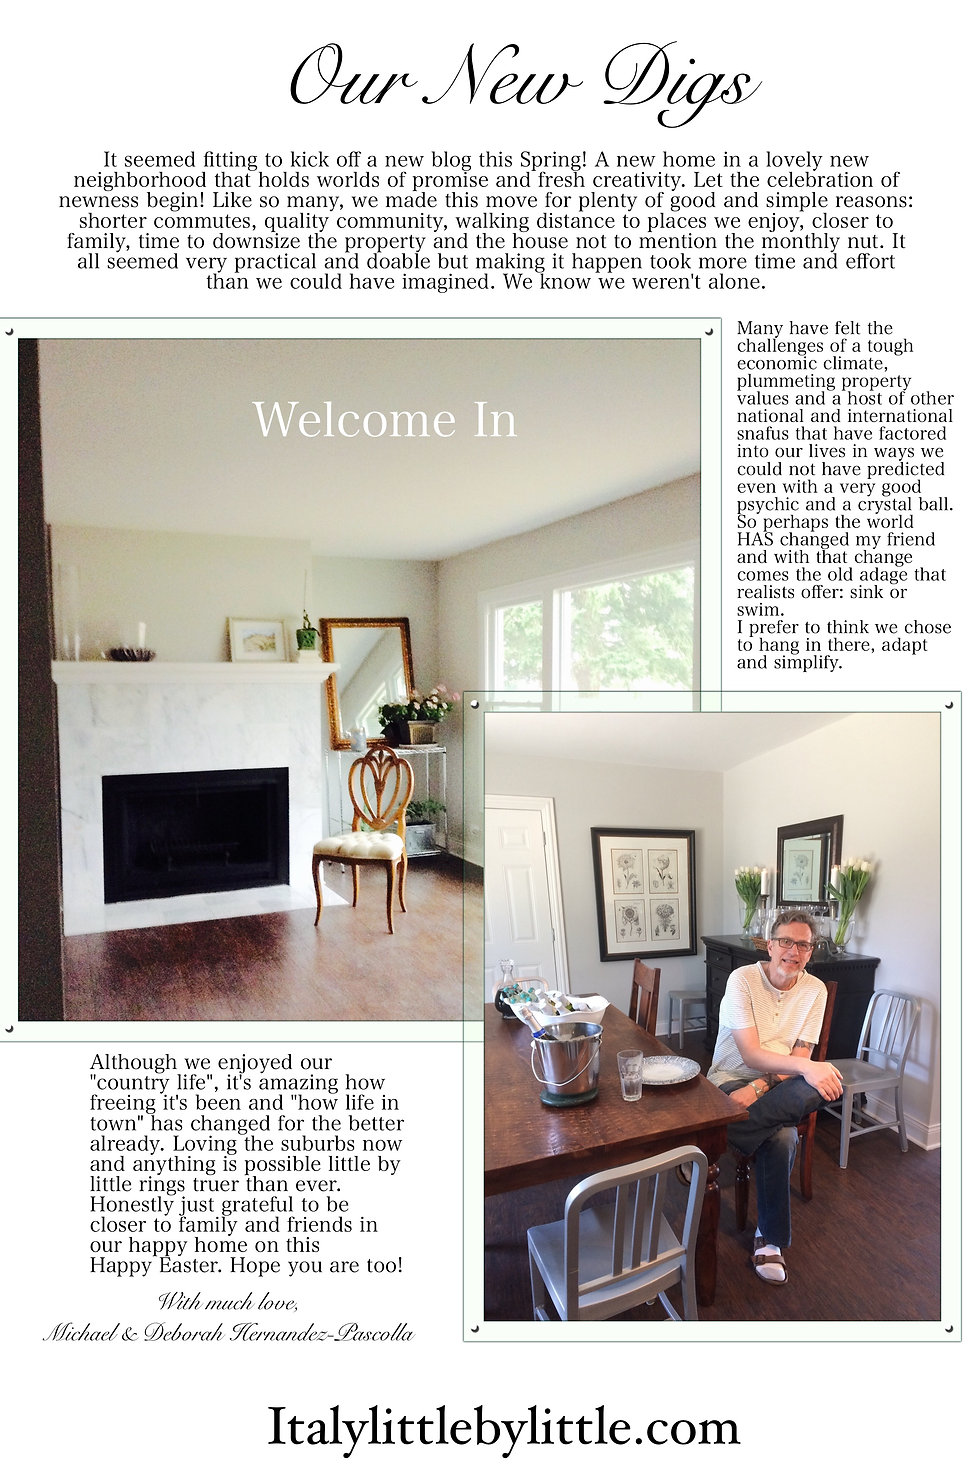 Home Stylist Deborah Hernandez-Pascolla's home beautifully styled and awaiting final furnishings. Mike Pascolla enjoying their new digs in Arlington Heights.